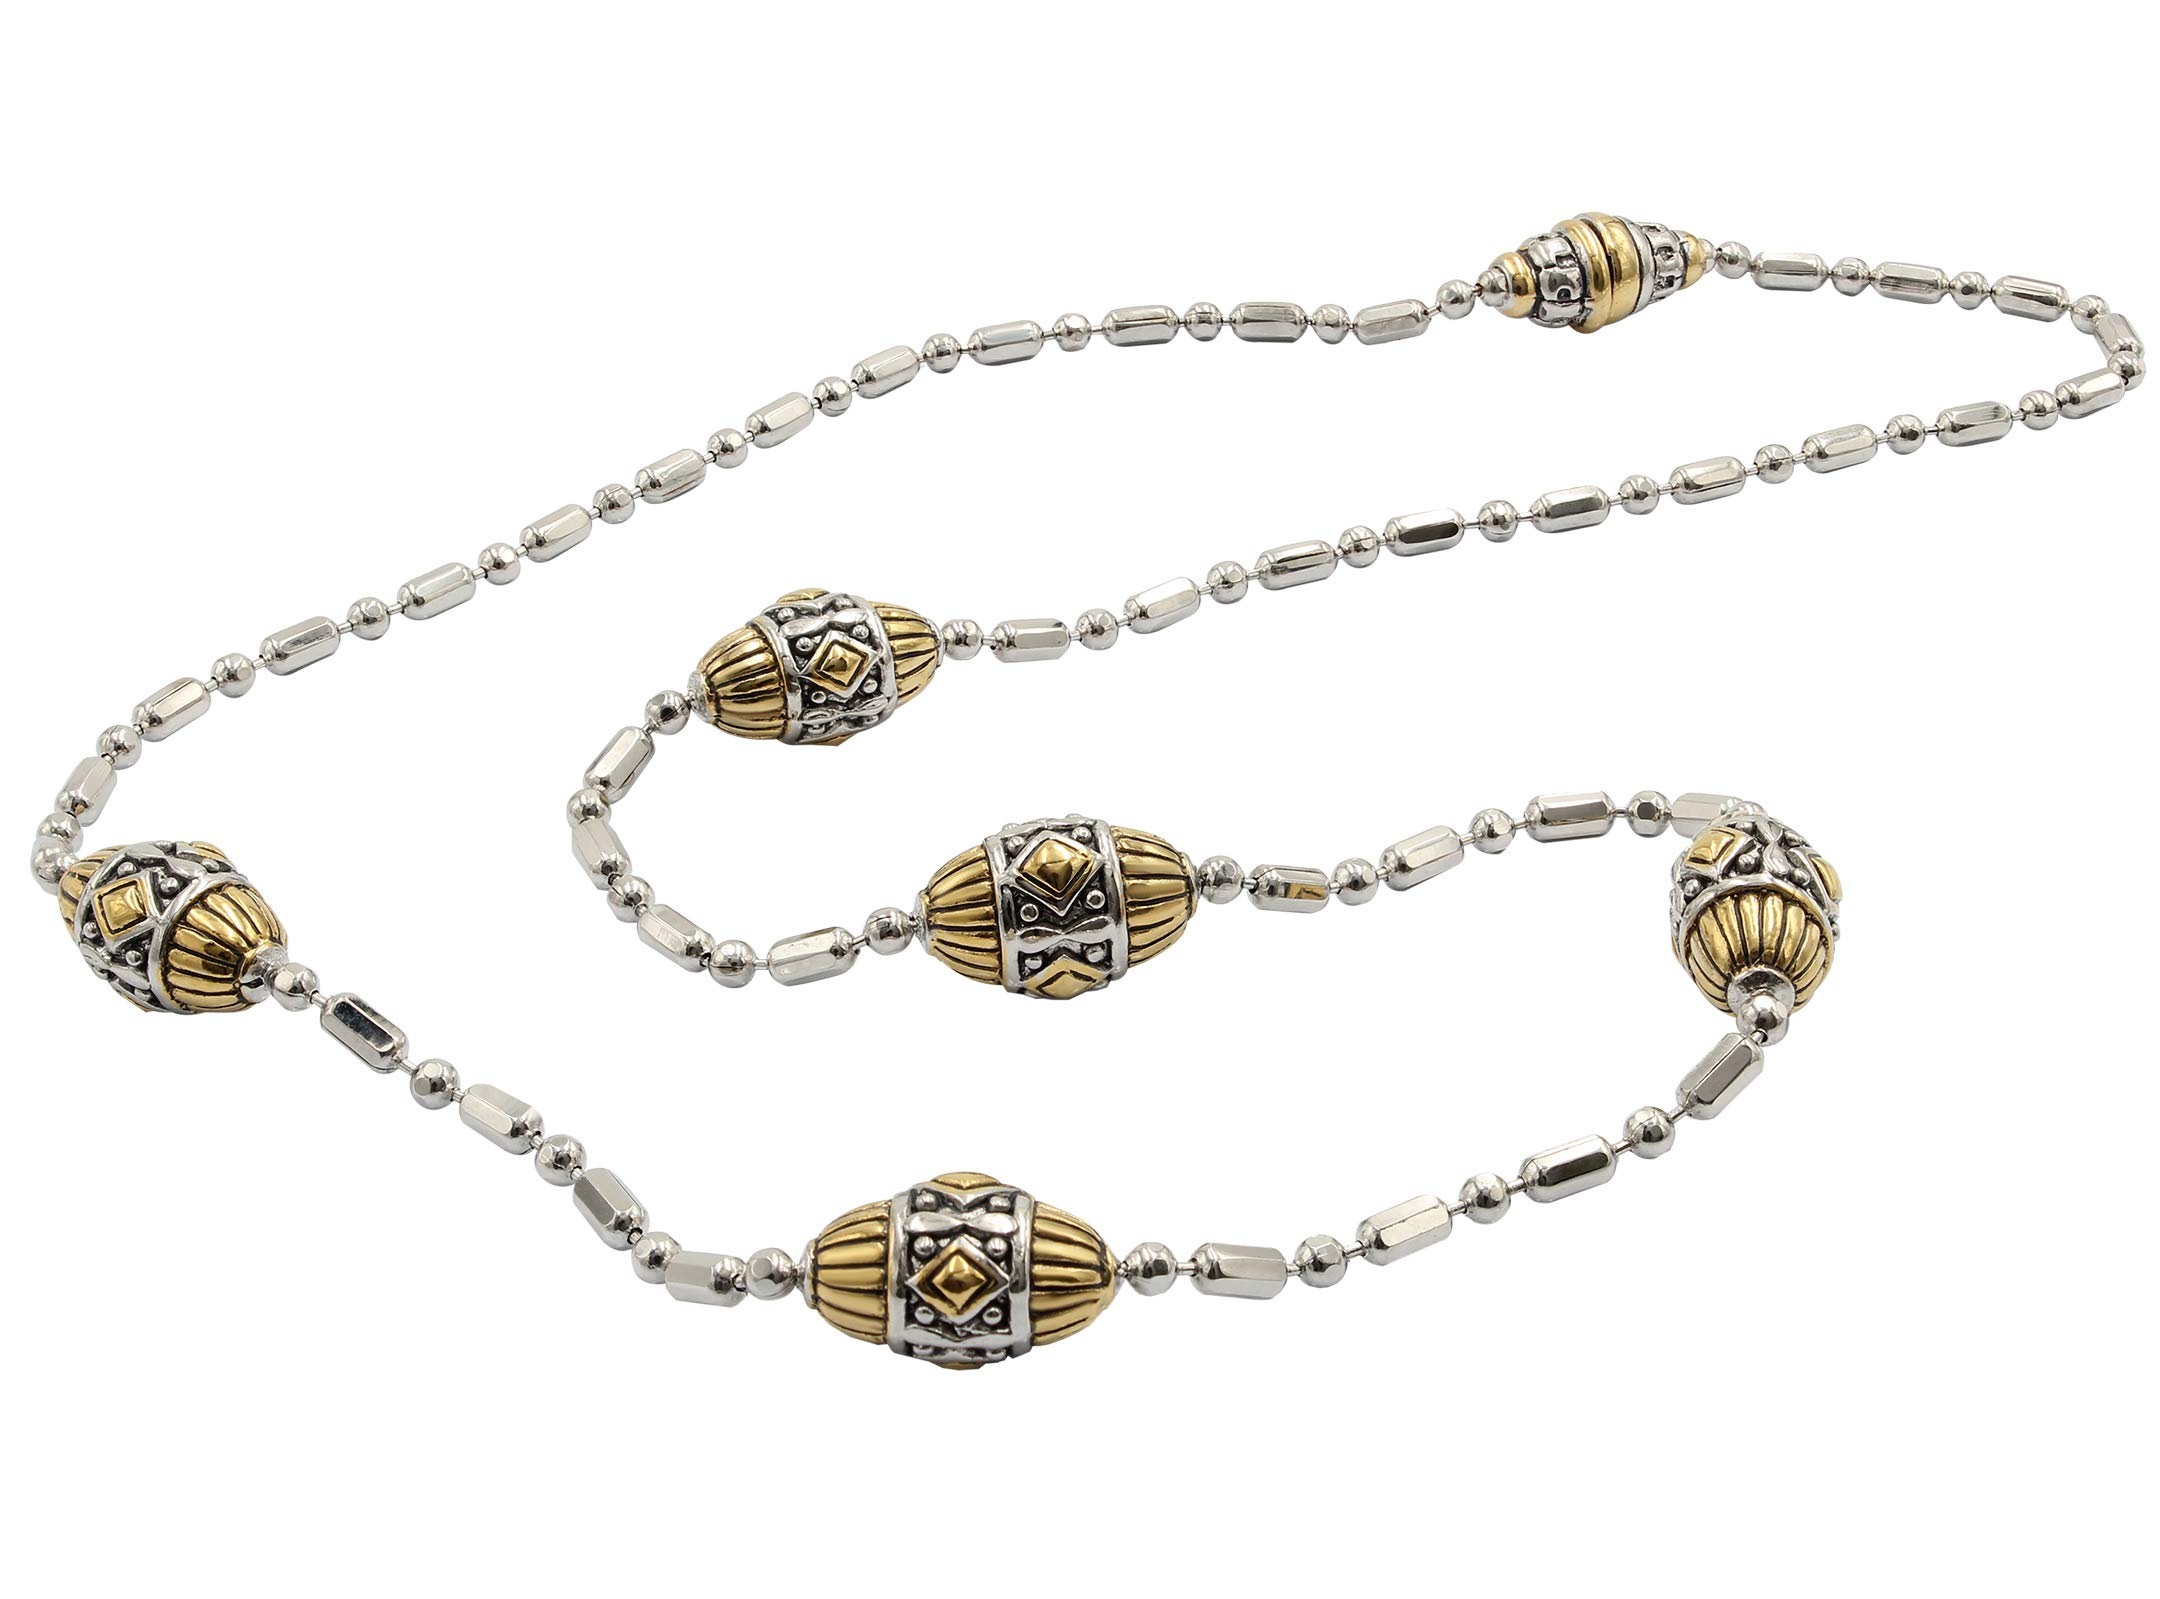 John Medeiros Gold and Silver Tone Long Strand 38'' Necklace with Handcrafted Charms Made in America by John Medeiros (Image #3)